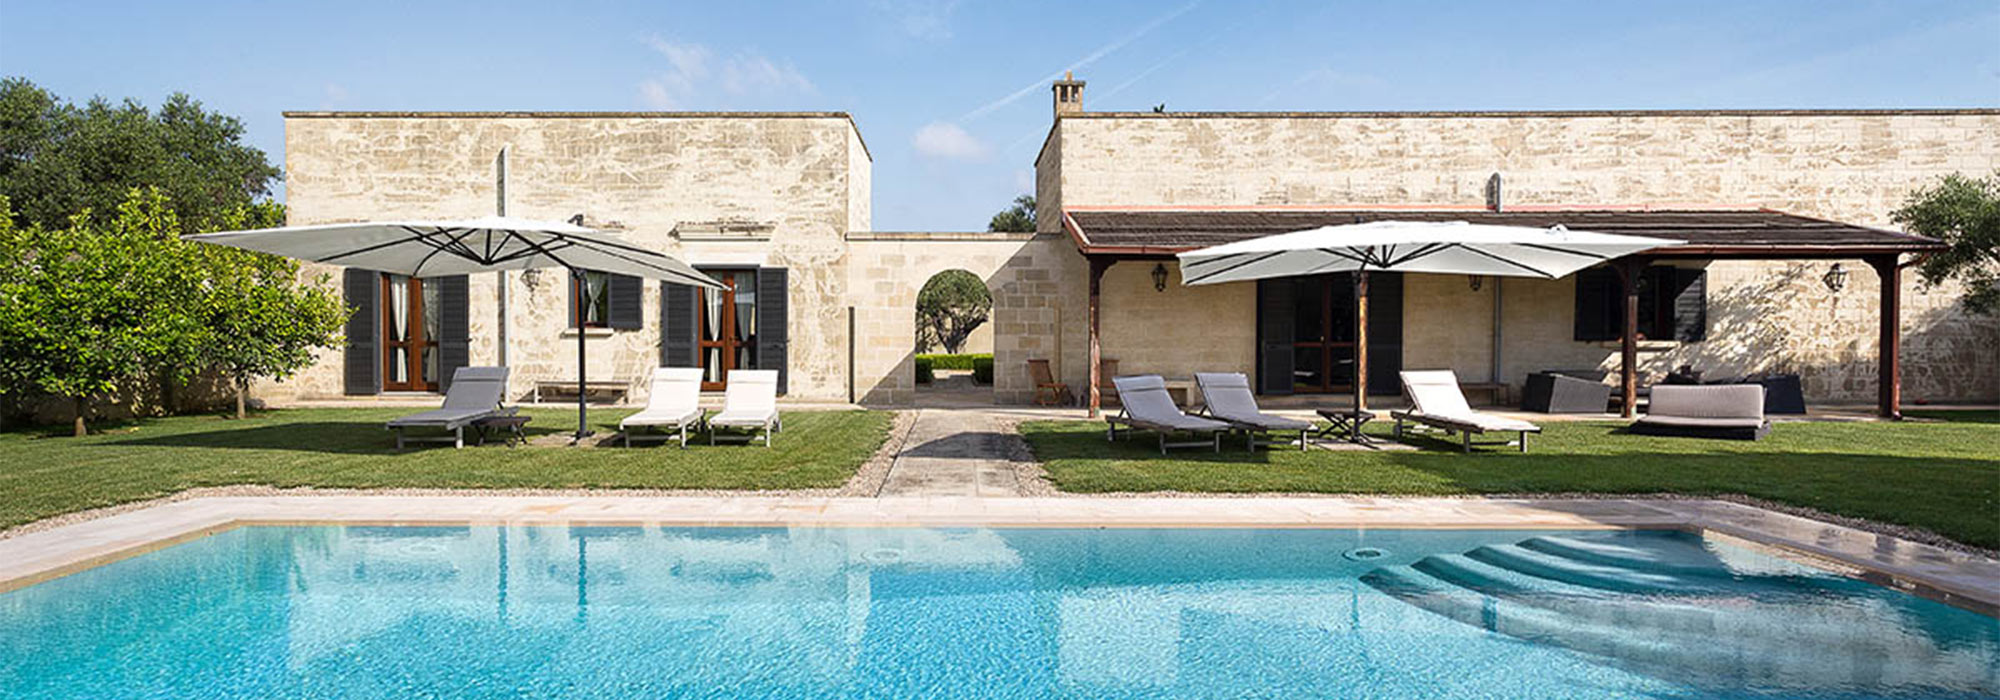 Masseria La Rosa – Cosy Luxury Villa in Puglia – Sleeps 10 – SPECIAL OFFERS